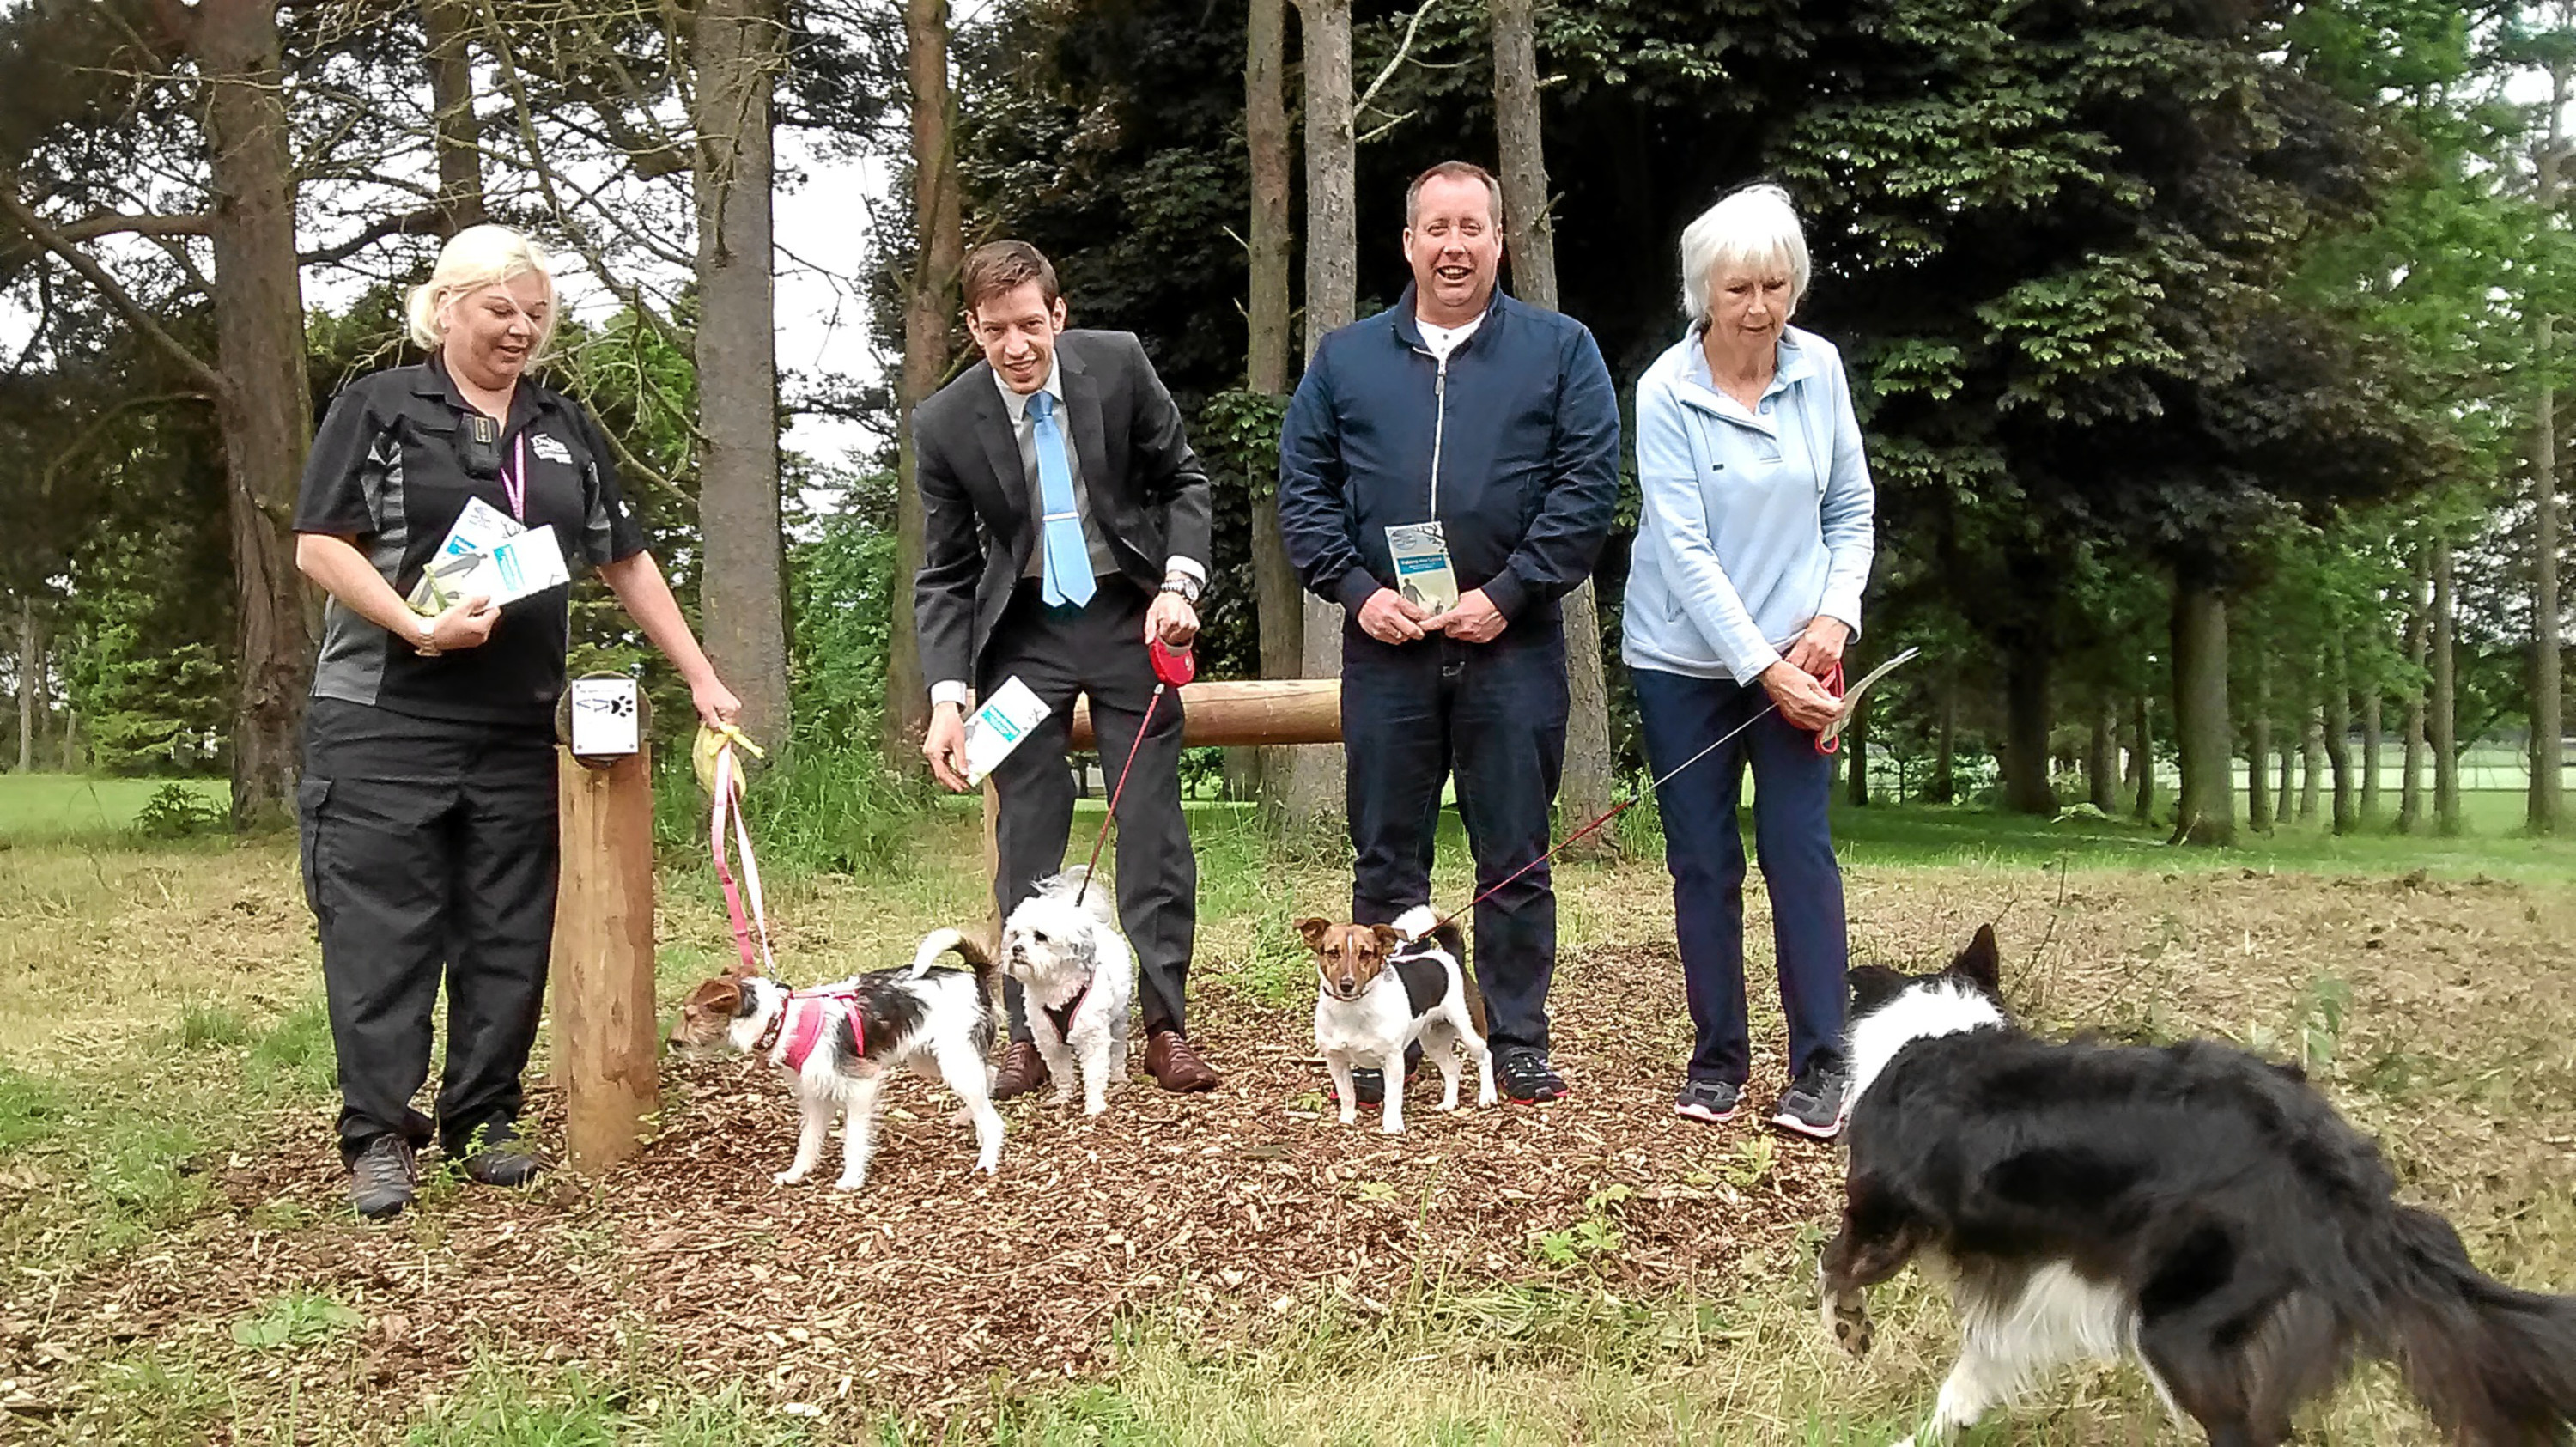 From left:  Animal Control Officer Hilary Nicholson, Councillor John Alexander, Blair Cochrane from Ancrum Dog Training and Sandra Boe from Discovery Dog Club.